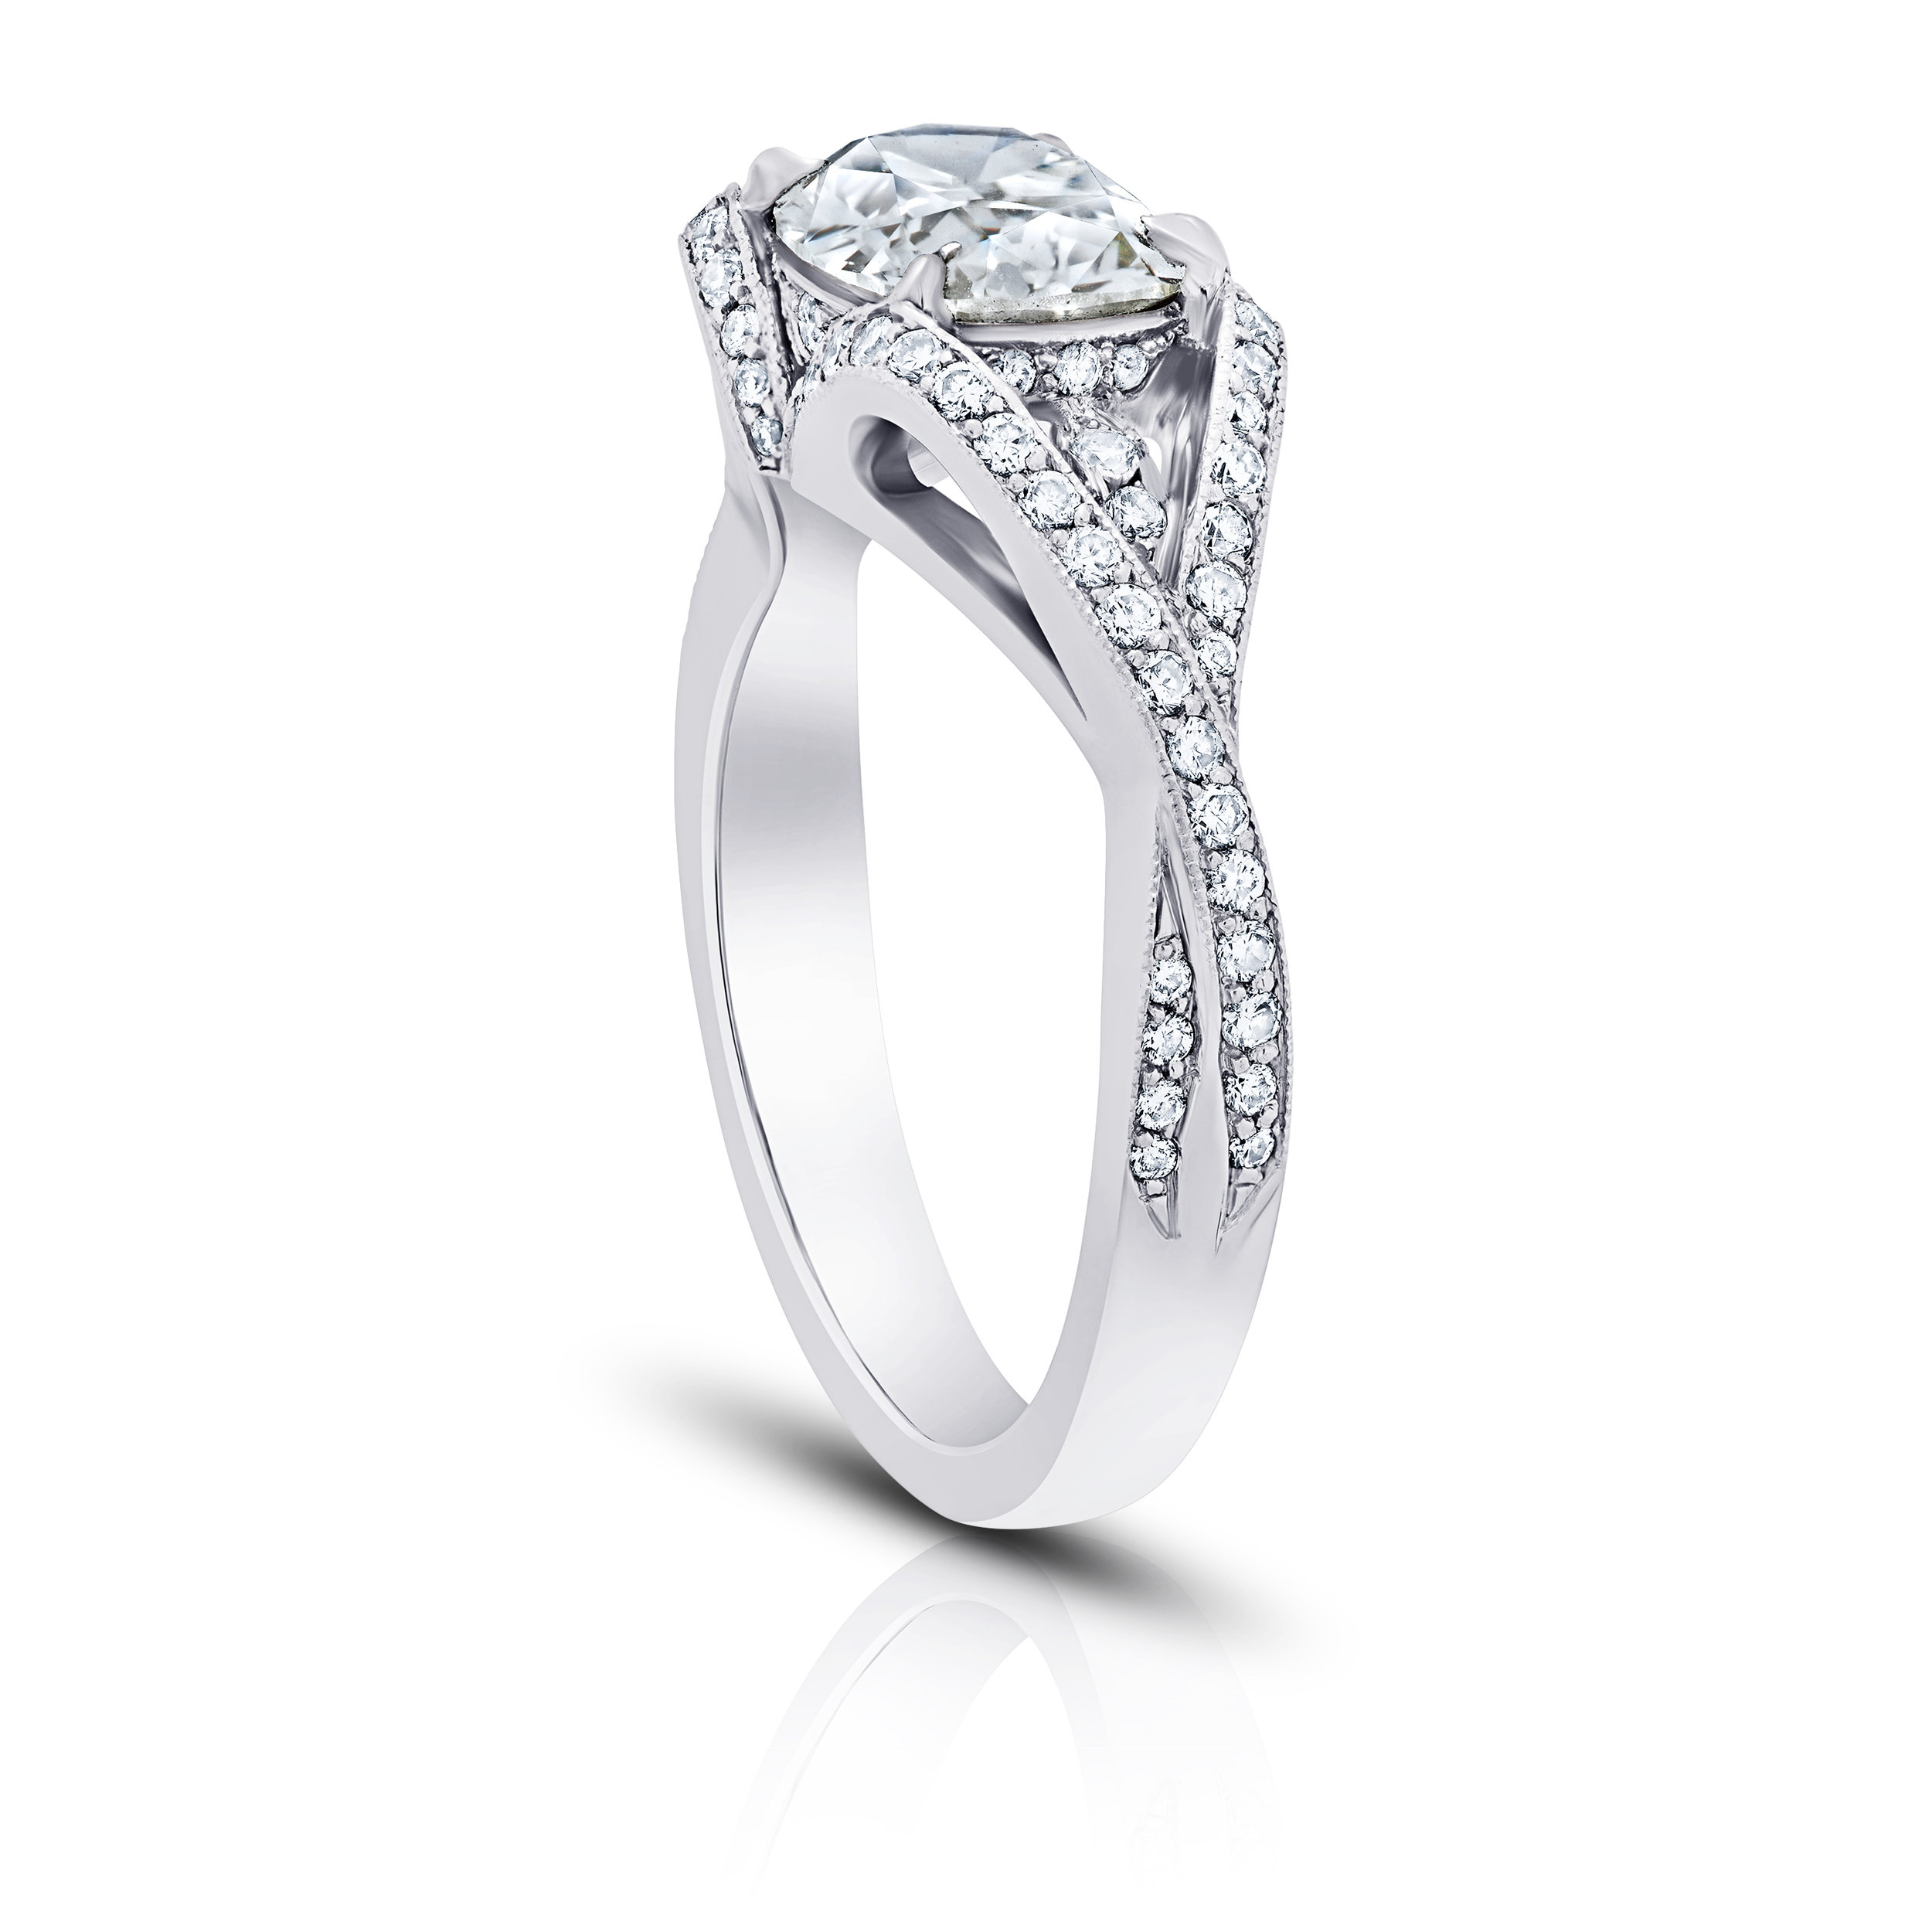 EAST MEETS WEST RING WITH OVAL CUT CENTER DIAMOND AND DIAMOND PAVE CRAFTED IN PLATINUM, 1.72 CTW, SIDE VIEW